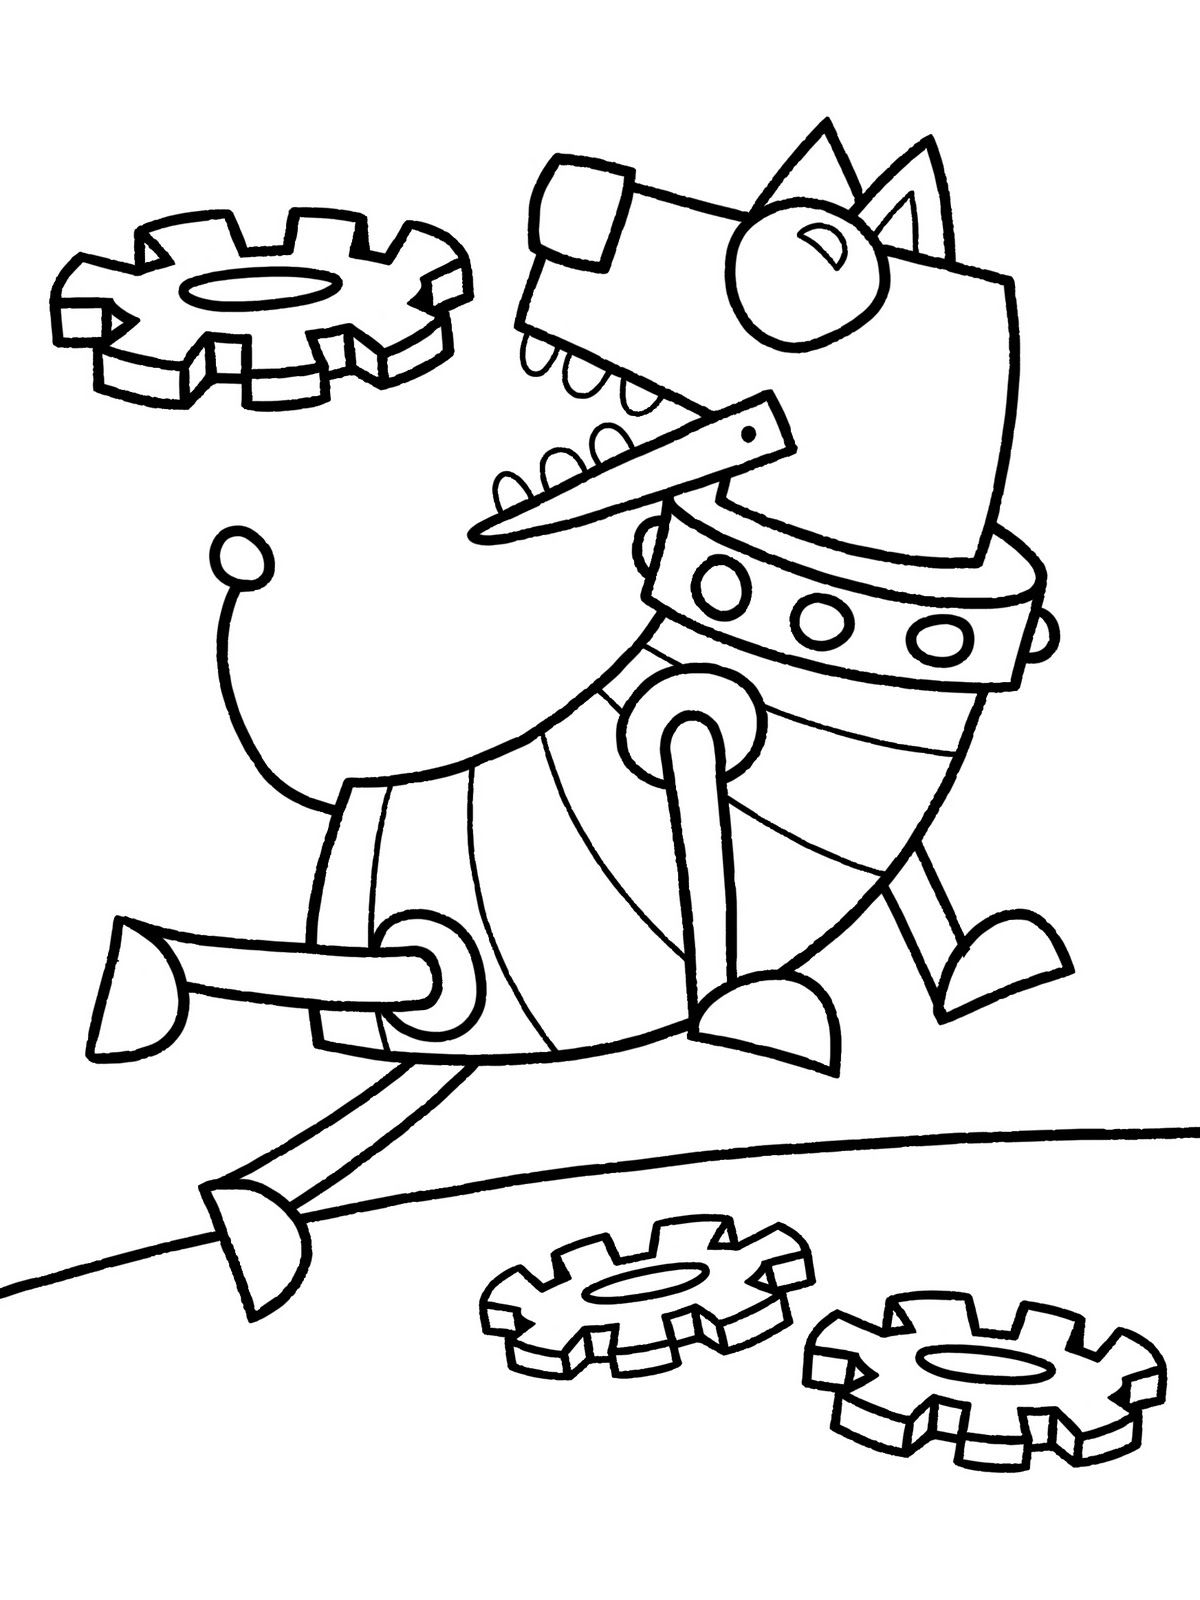 Pin By Mrs Fox On Robots Dog Coloring Page Coloring Pages